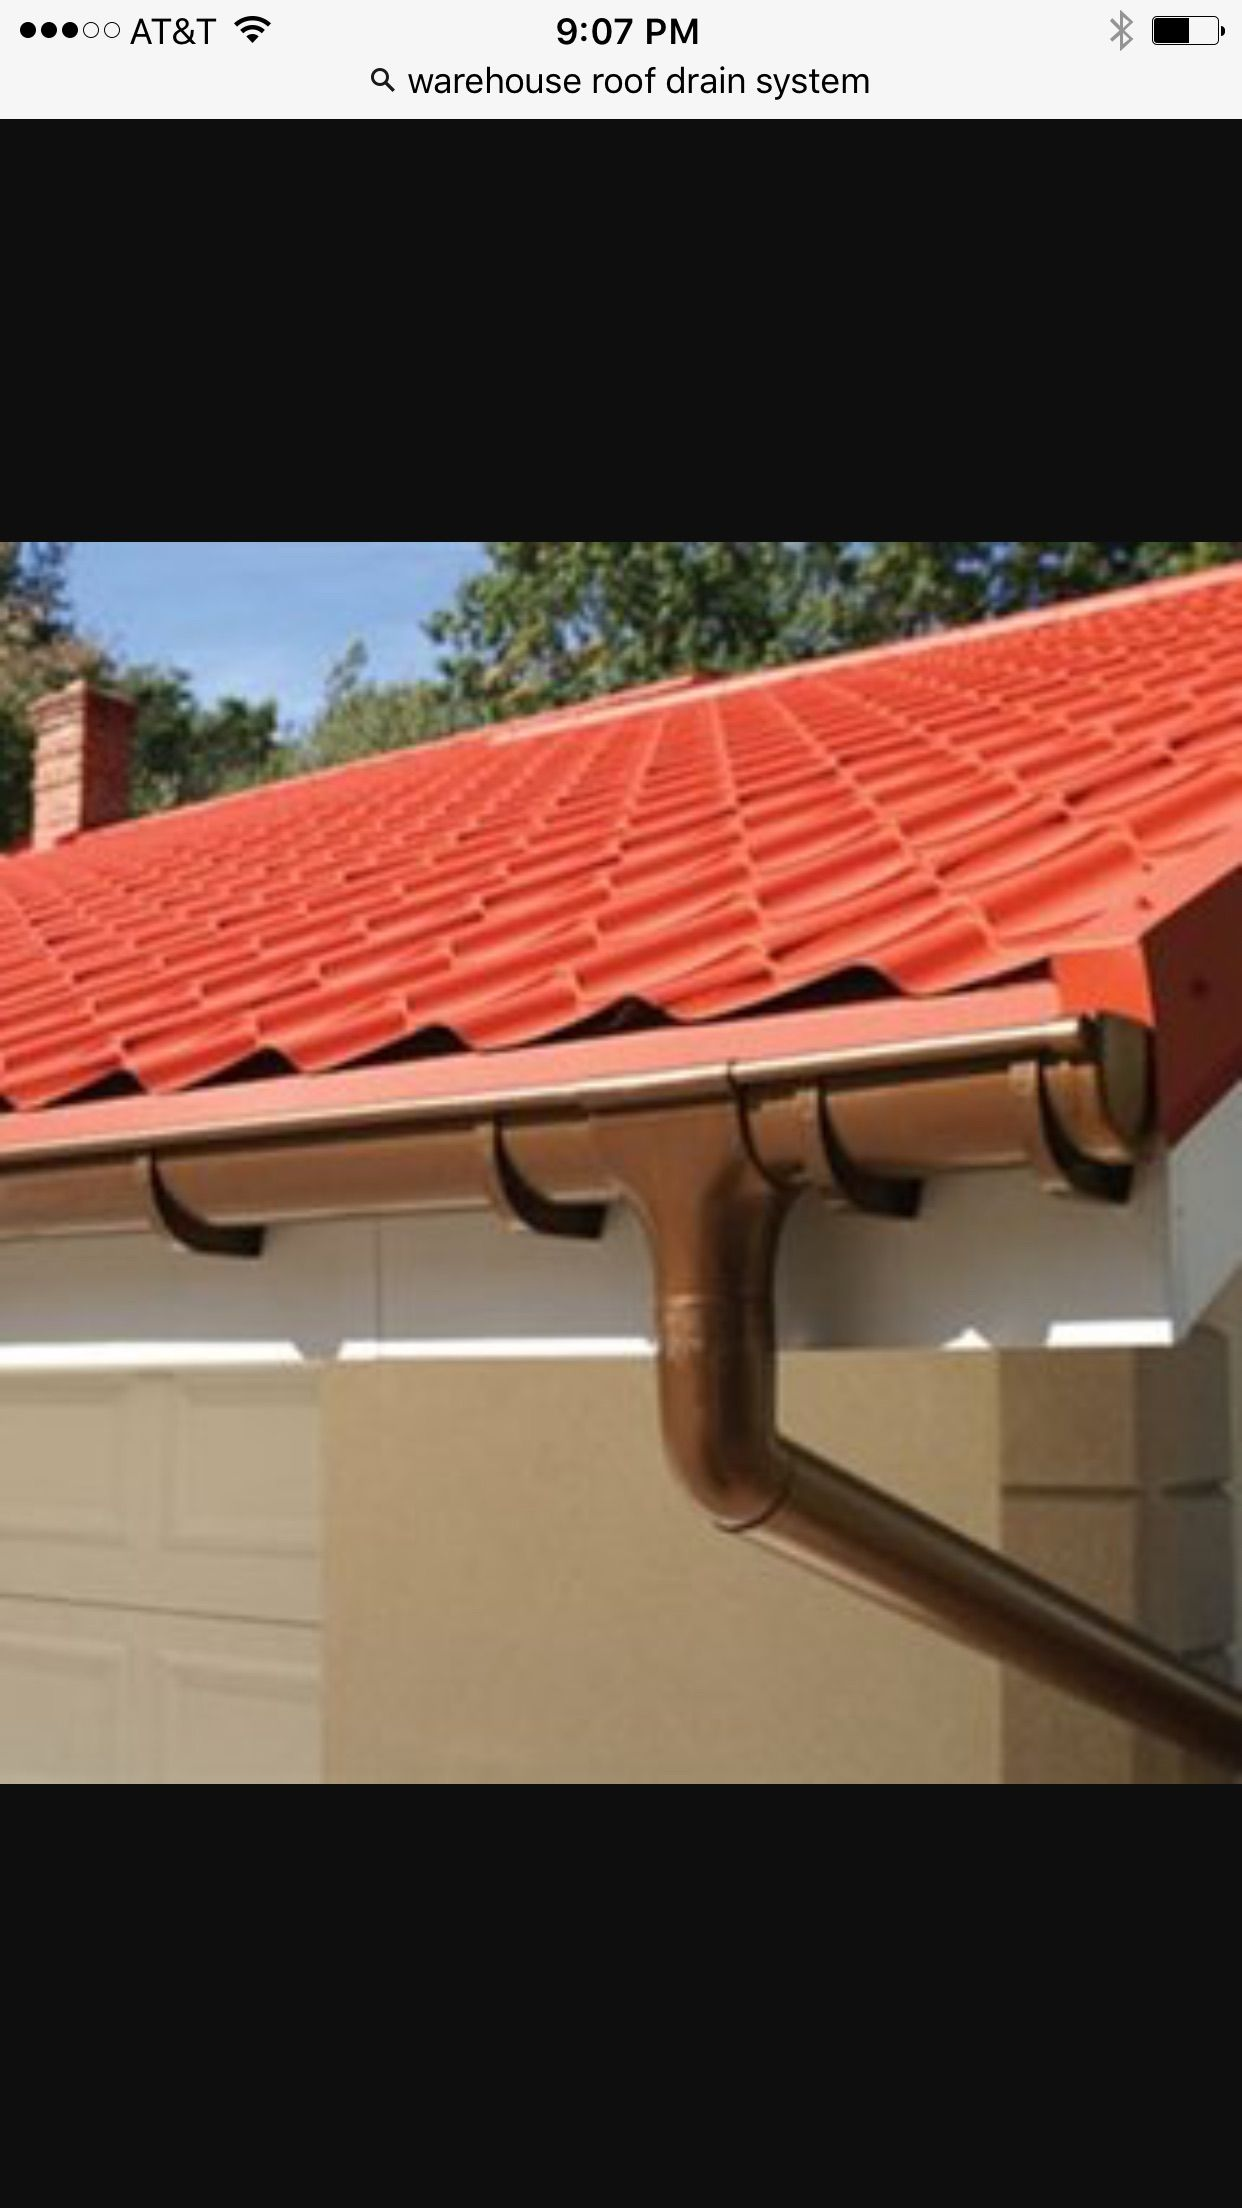 Pin By Rivelino Martins On Casa Metal Roof How To Install Gutters Gutters